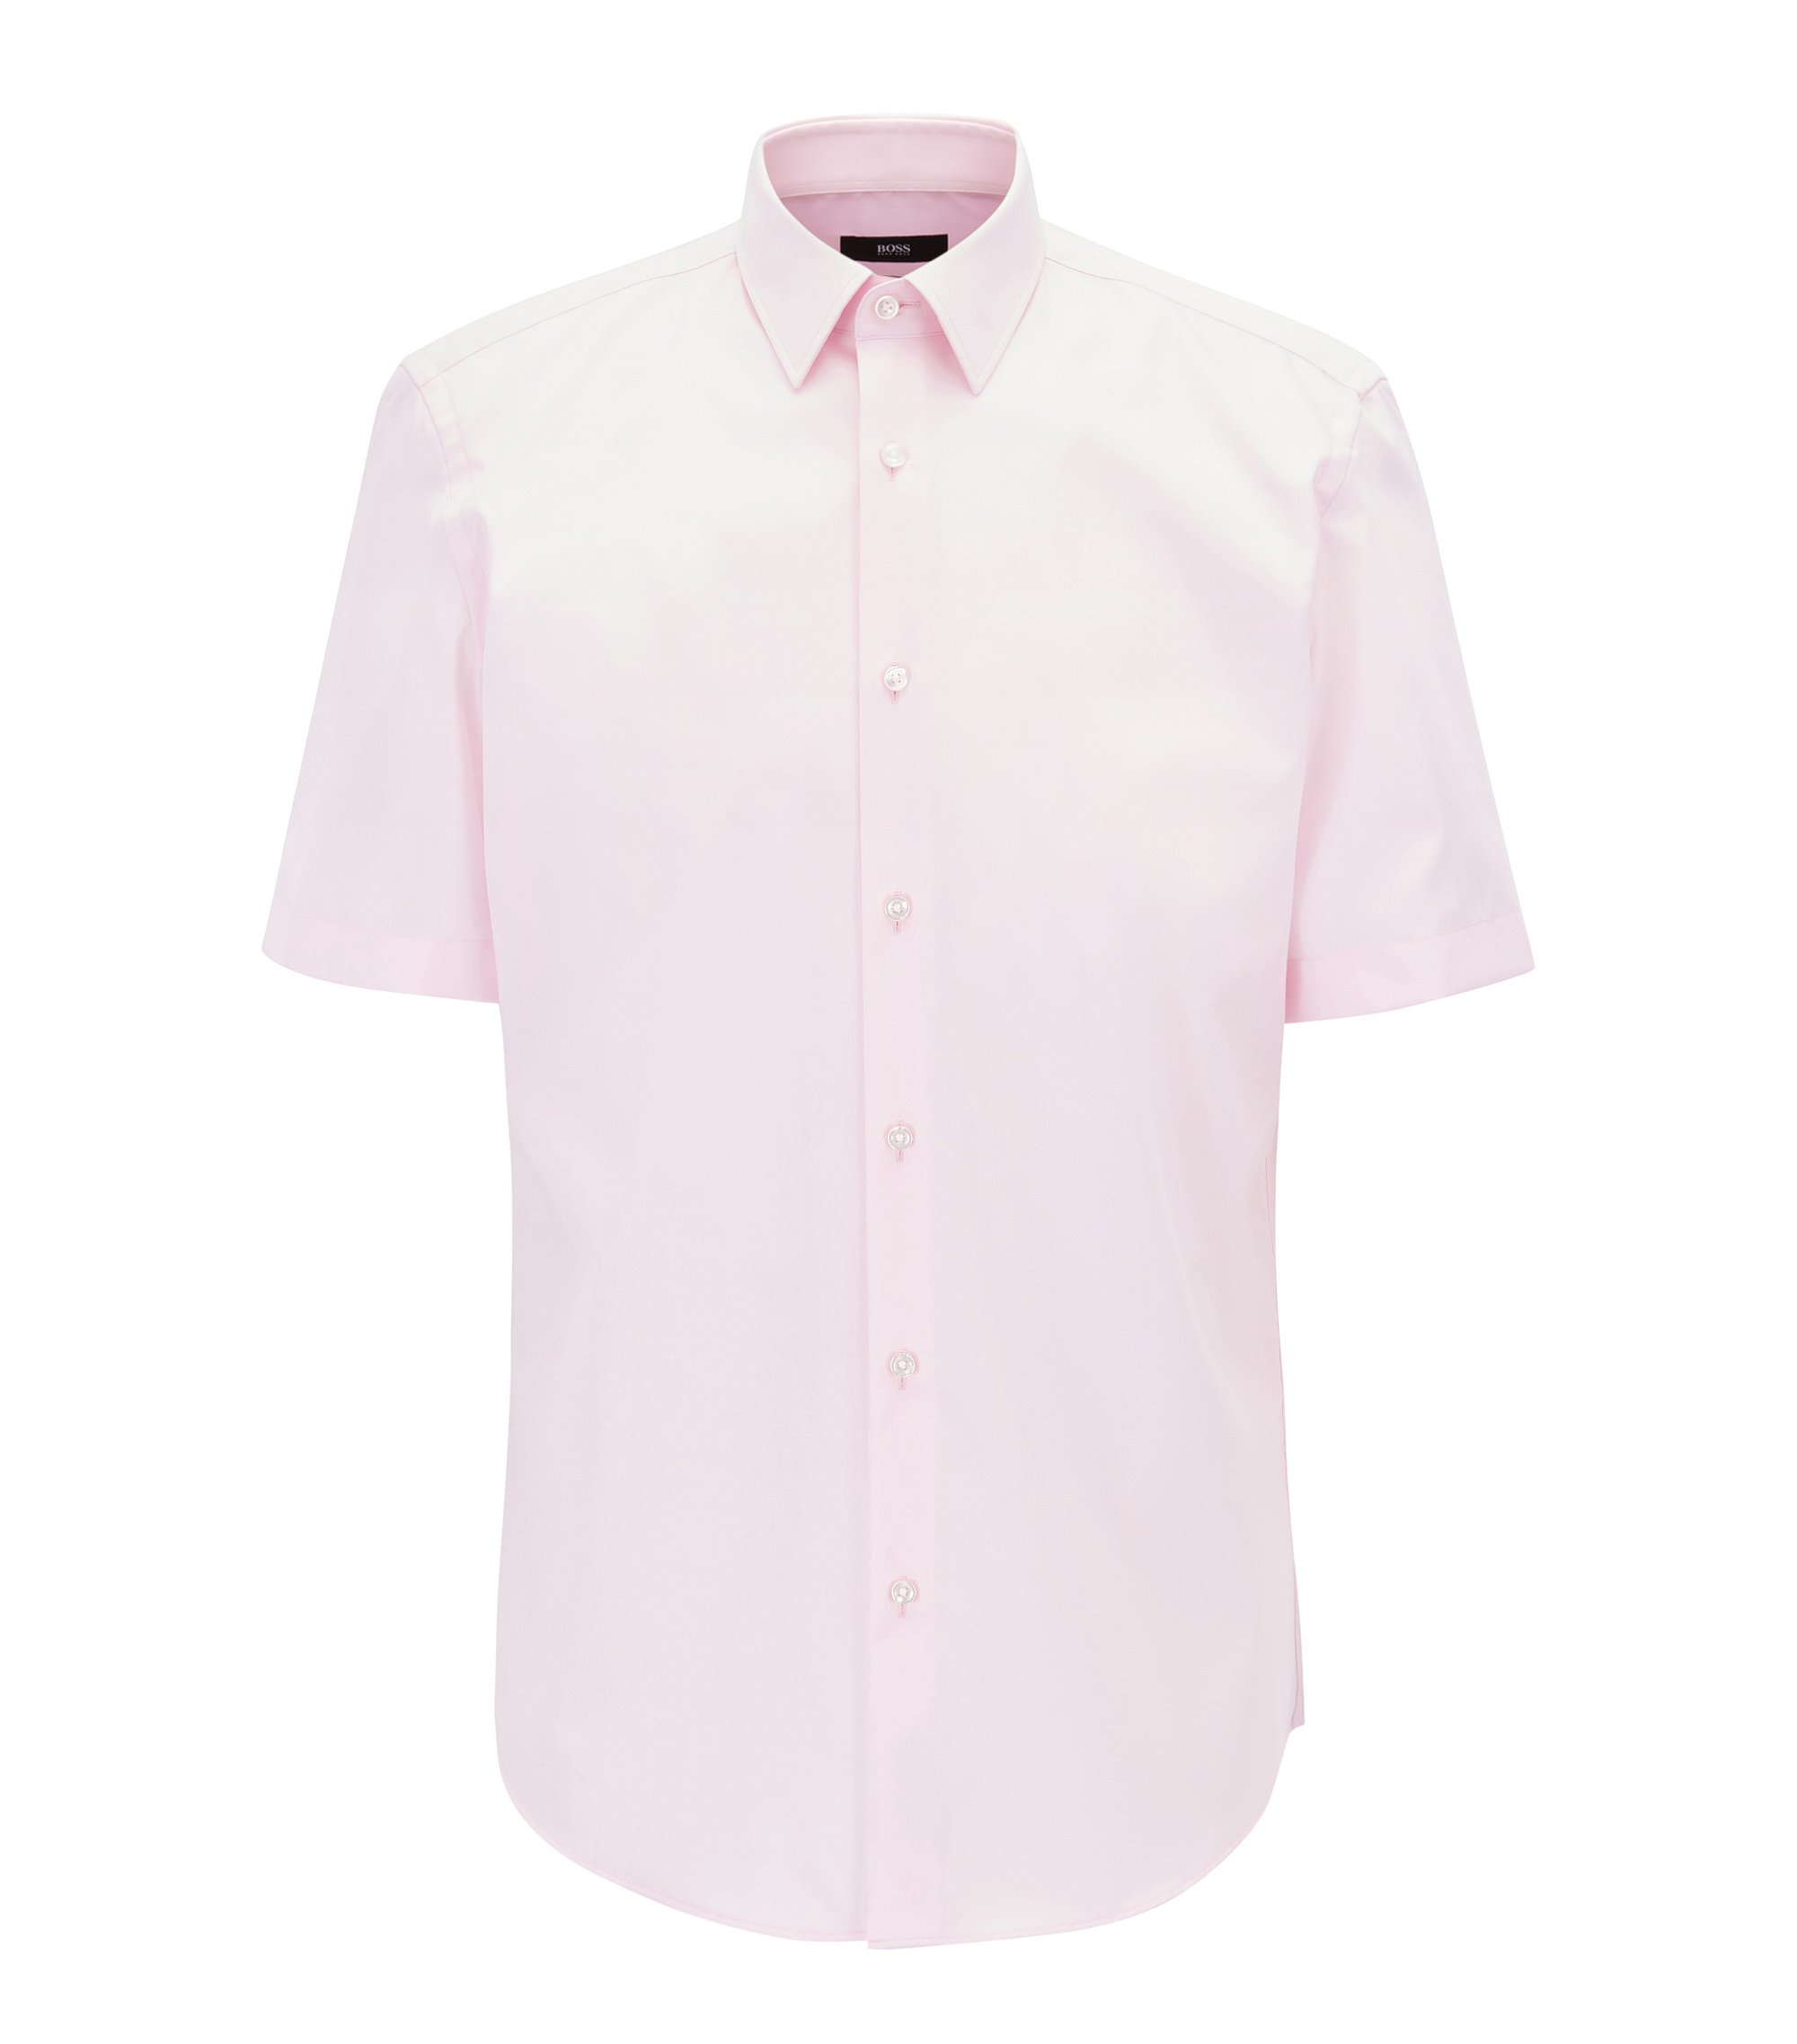 Short-sleeved easy-iron cotton poplin shirt, light pink